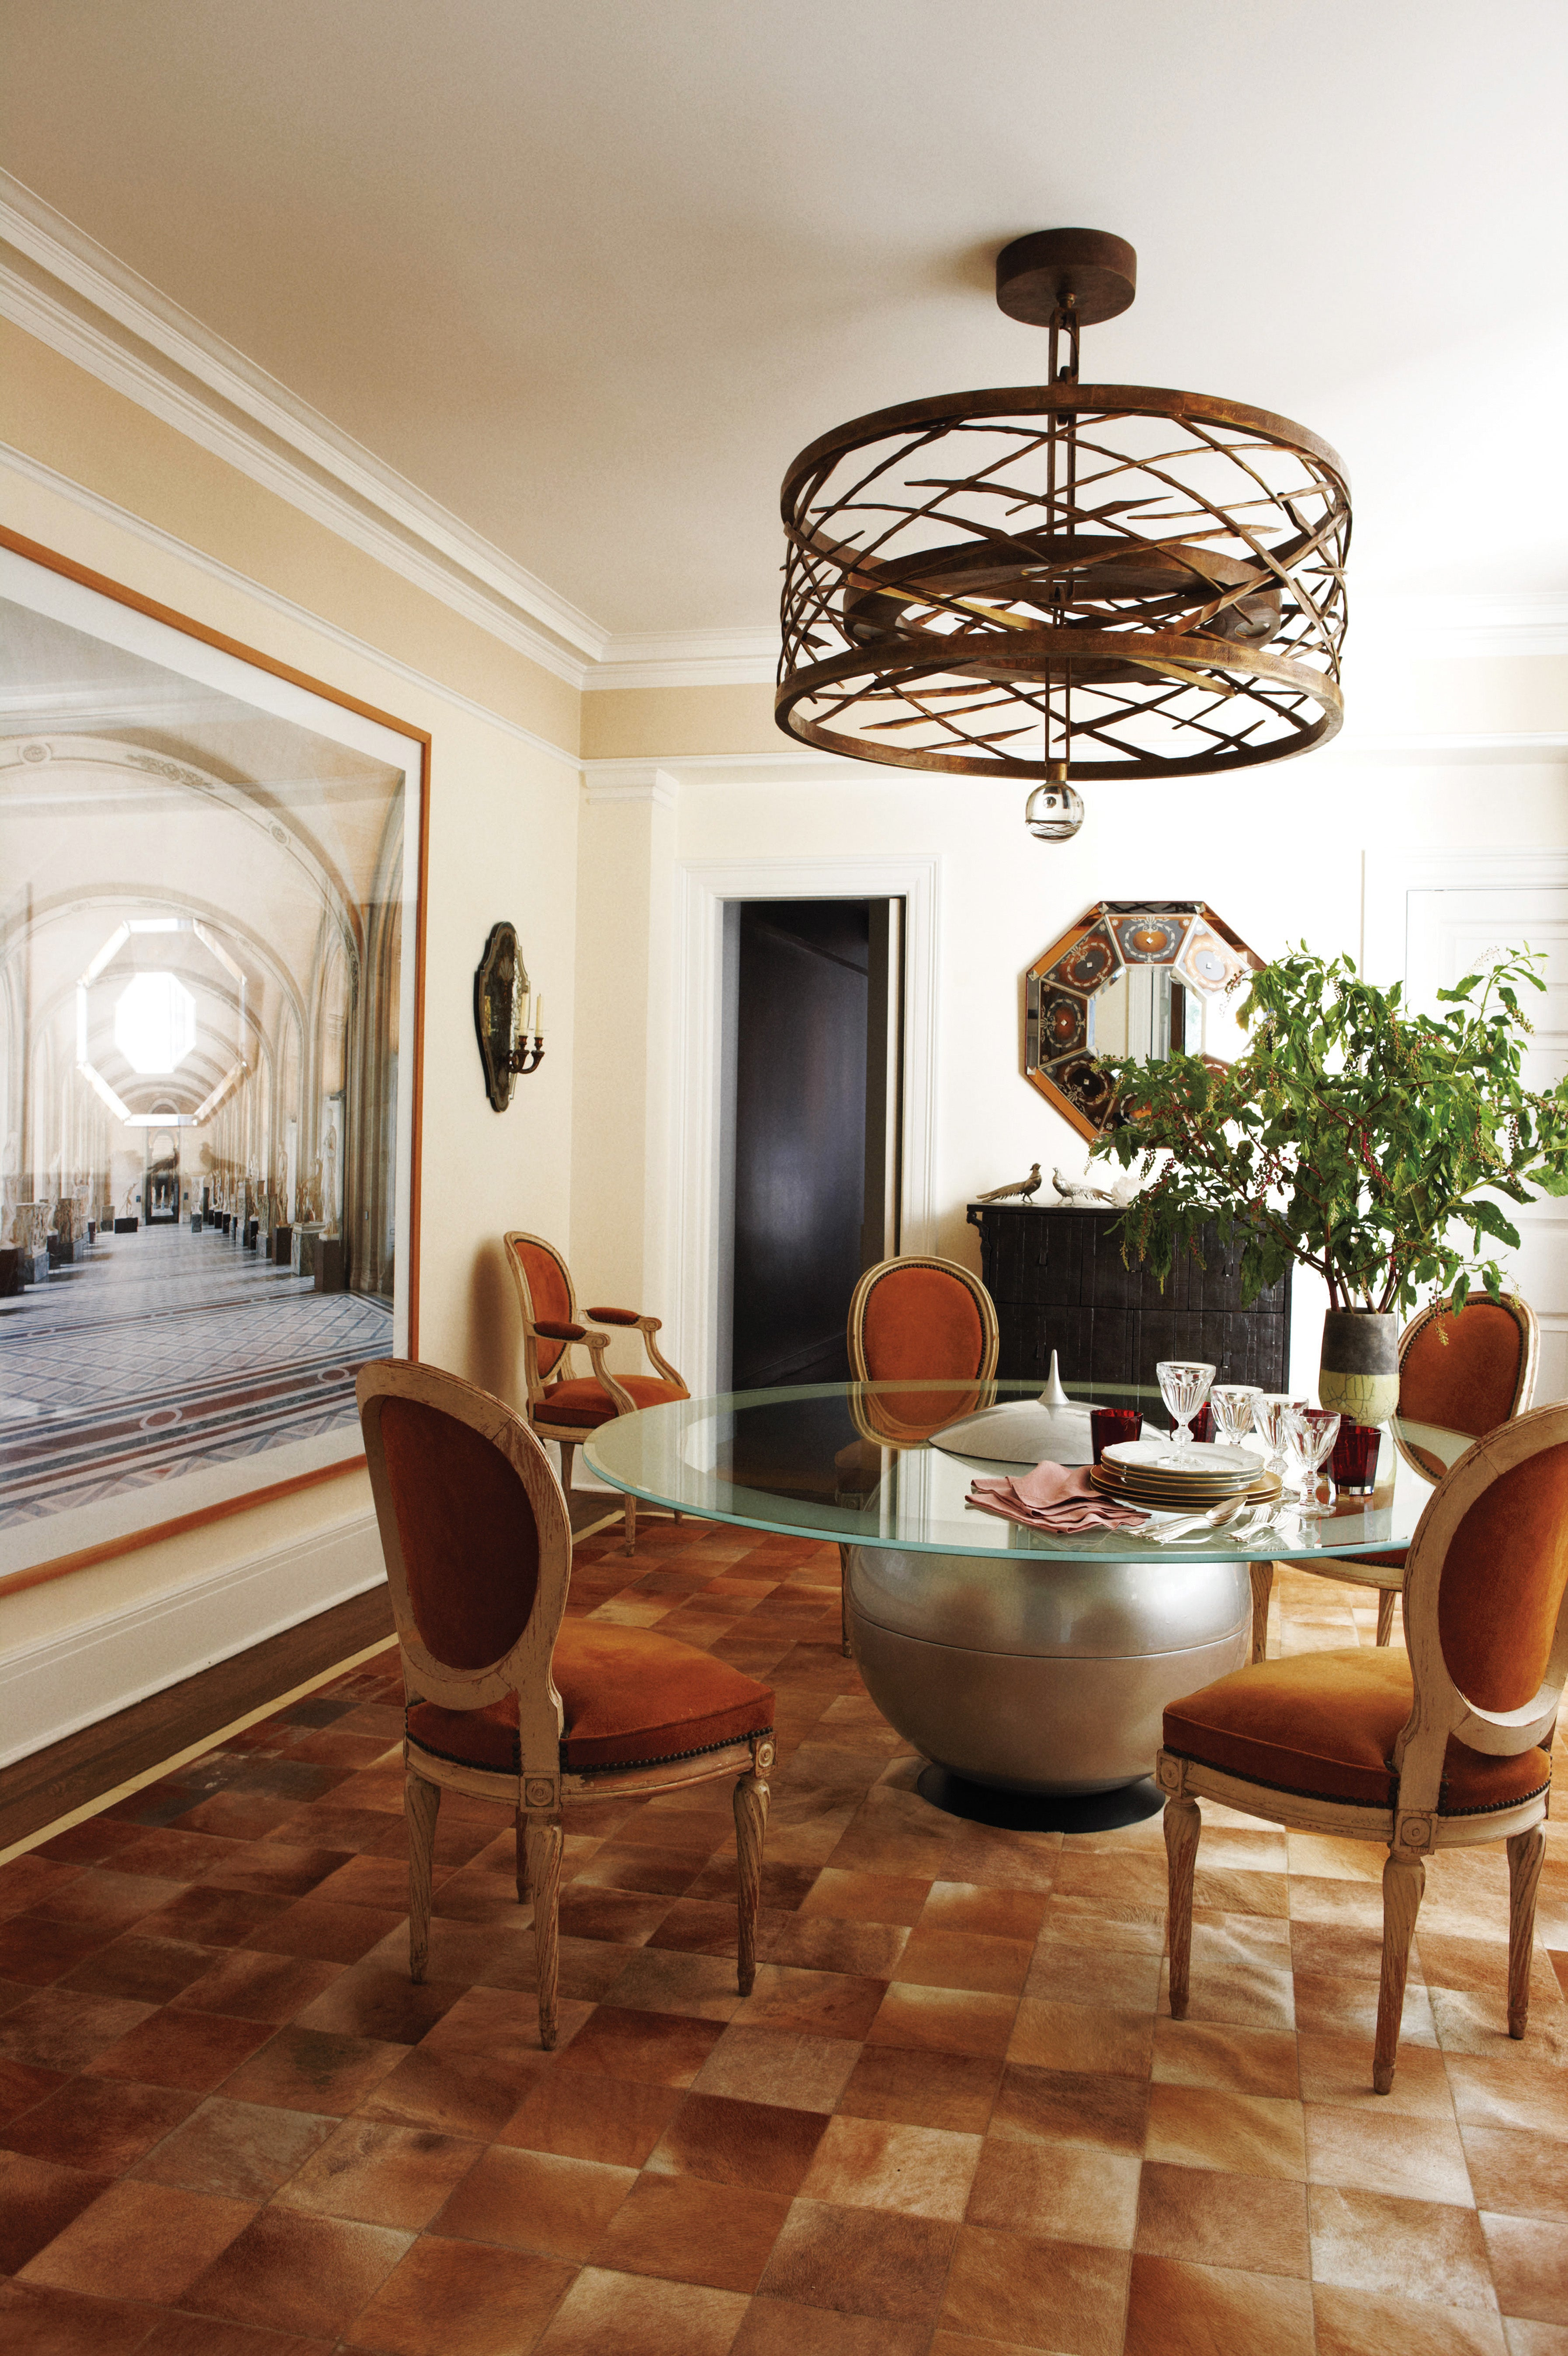 In the Upper East Side apartment, an Hervé Van der Straeten chandelier hangs above a 1980s Italian table, which is encircled by Maison Jansen chairs.